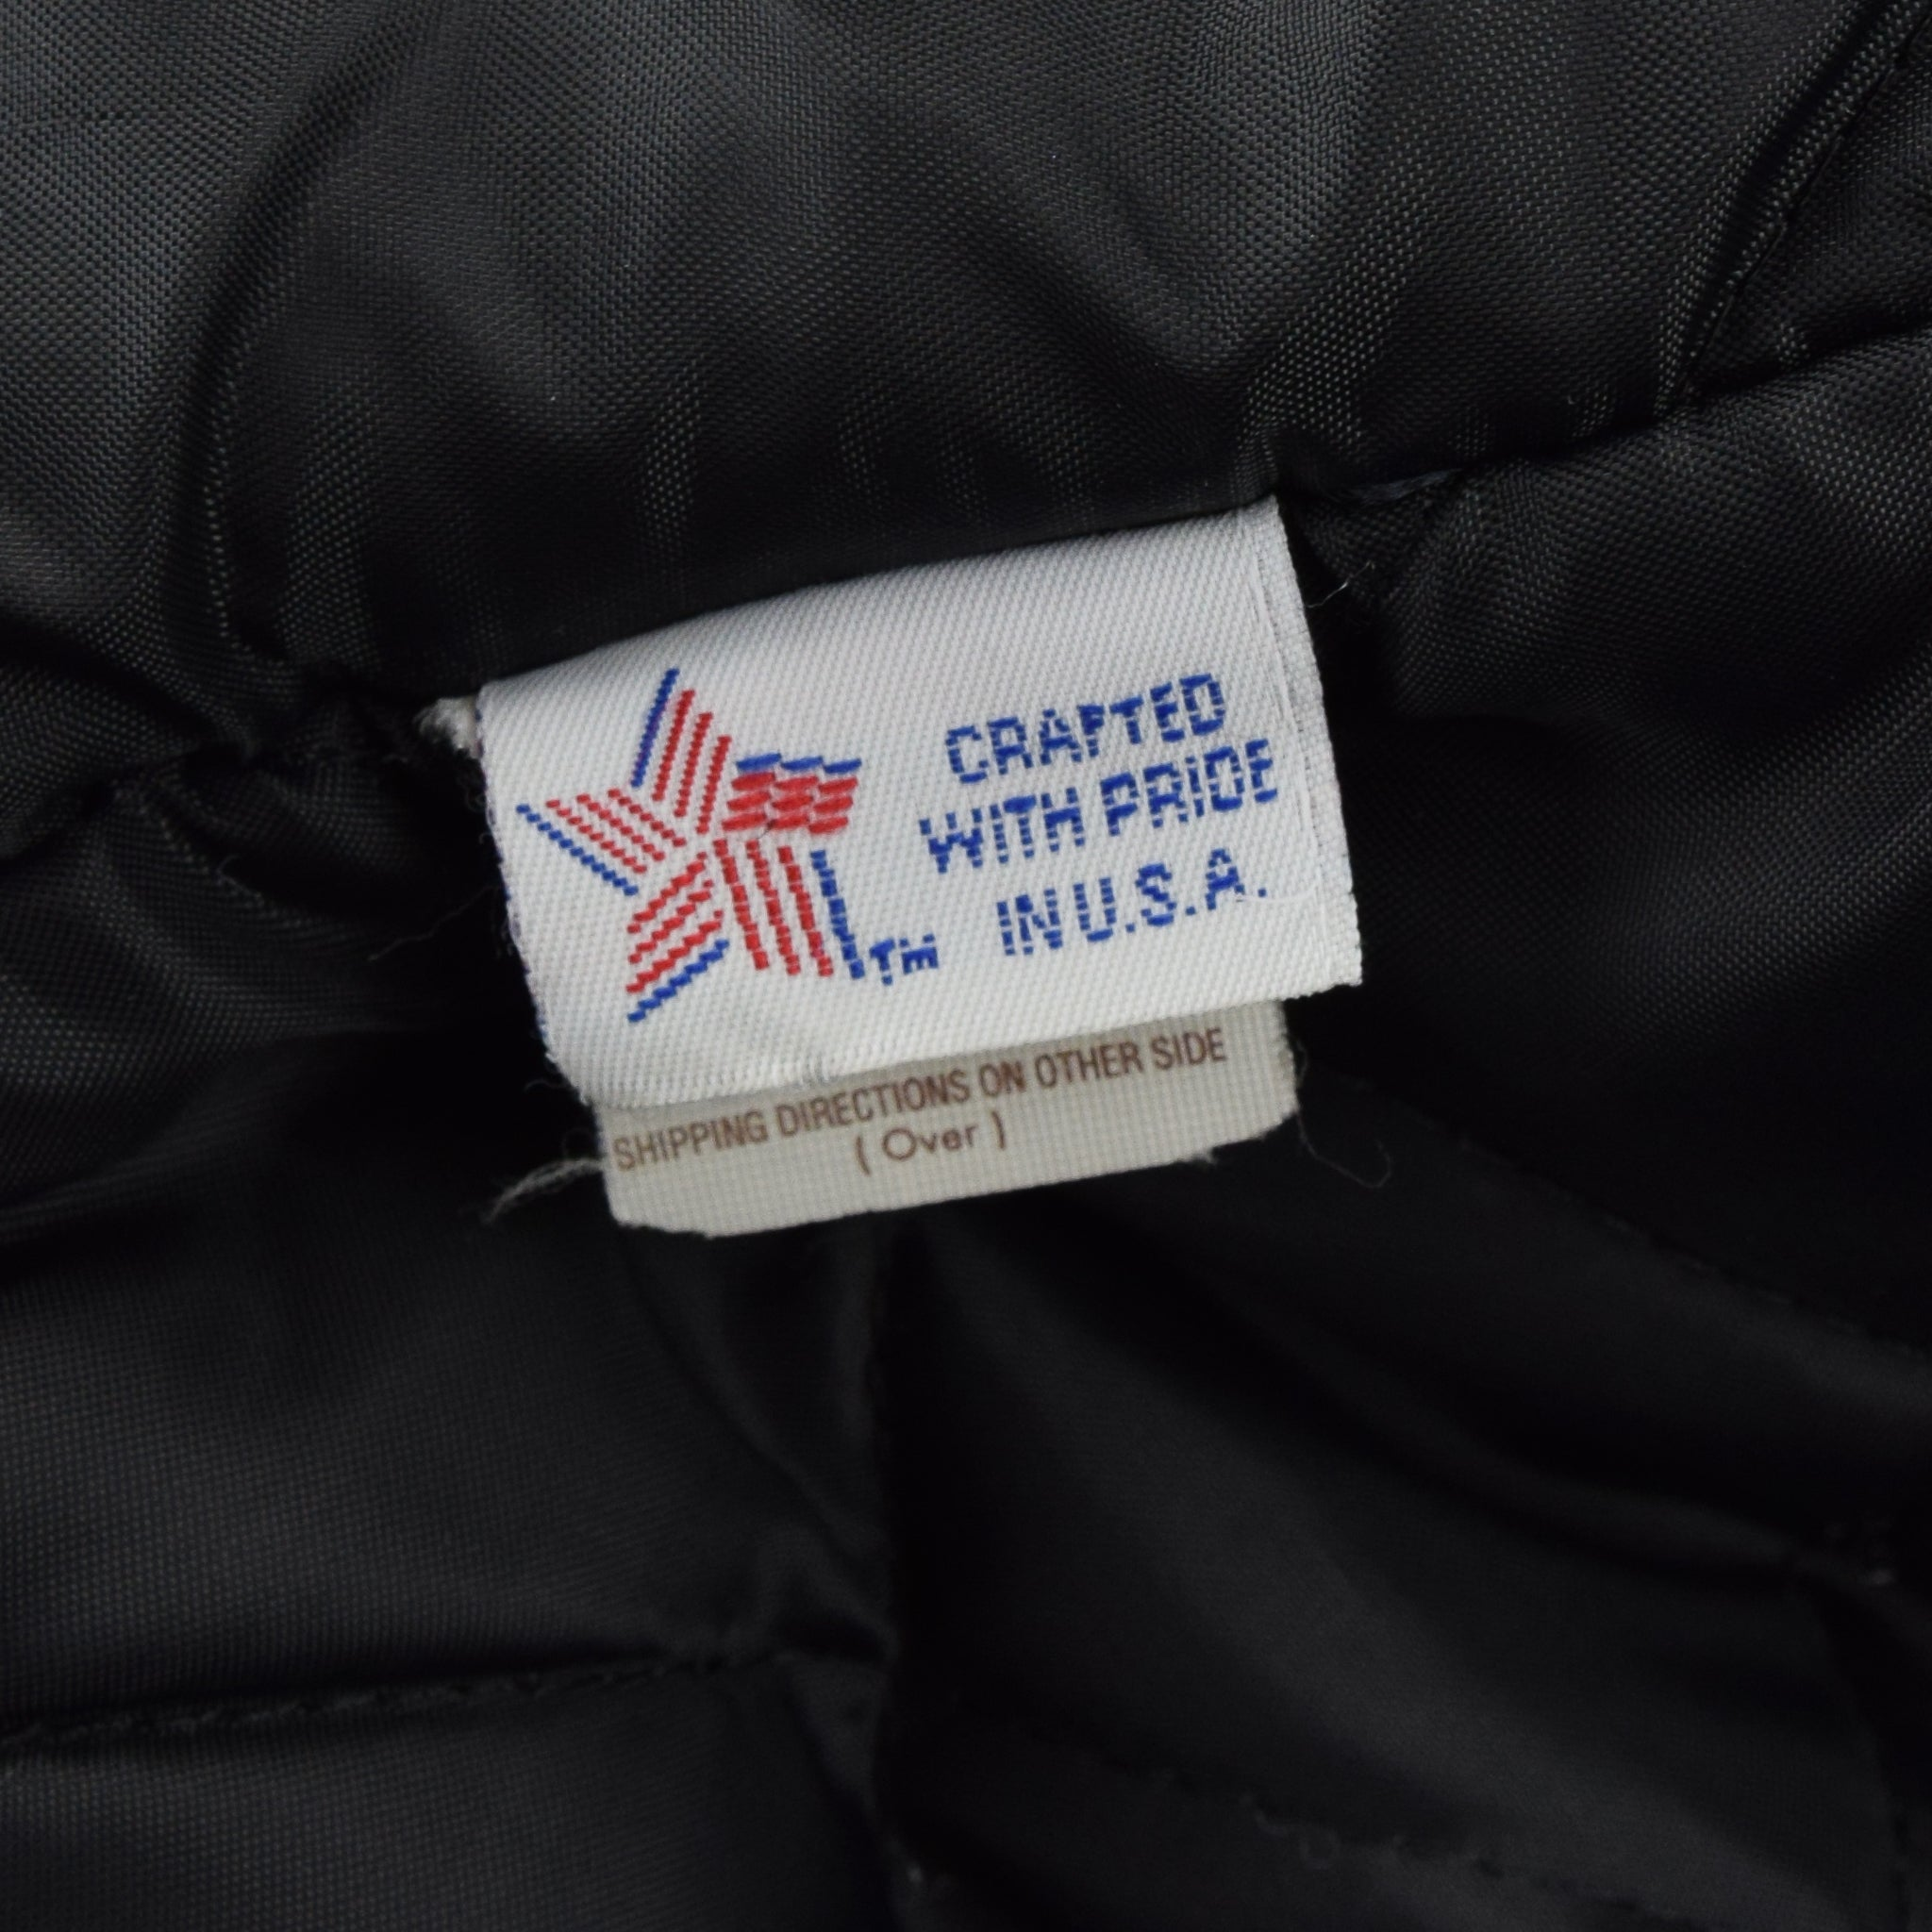 Vintage Schott NYC 740N Black Leather Pea Coat Reefer Jacket USA Made XXL / XXXL label